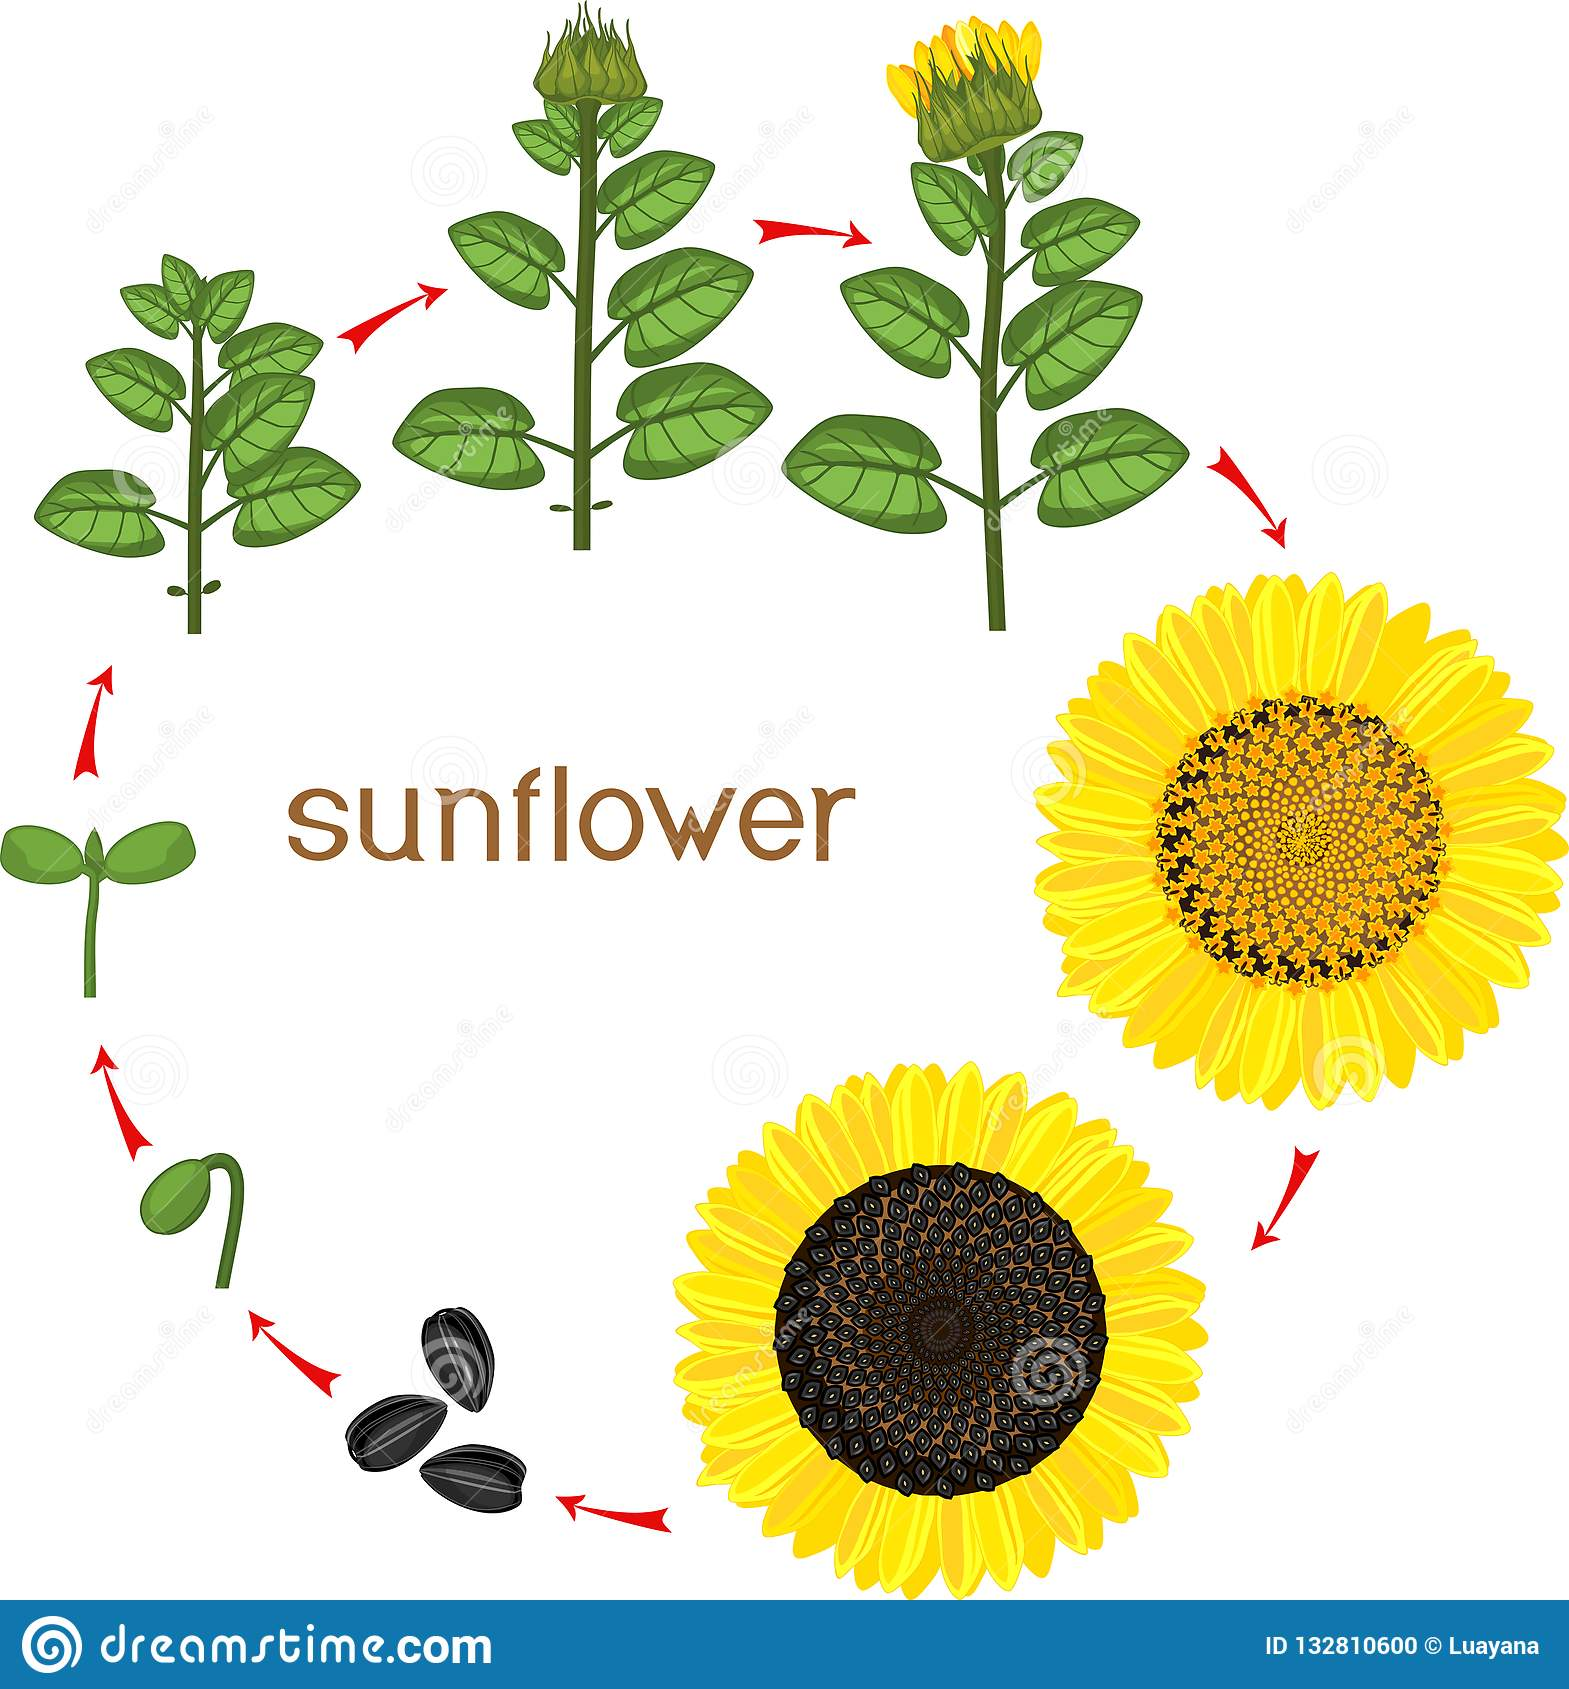 Sunflower Life Cycle Growth Stages From Seeding To